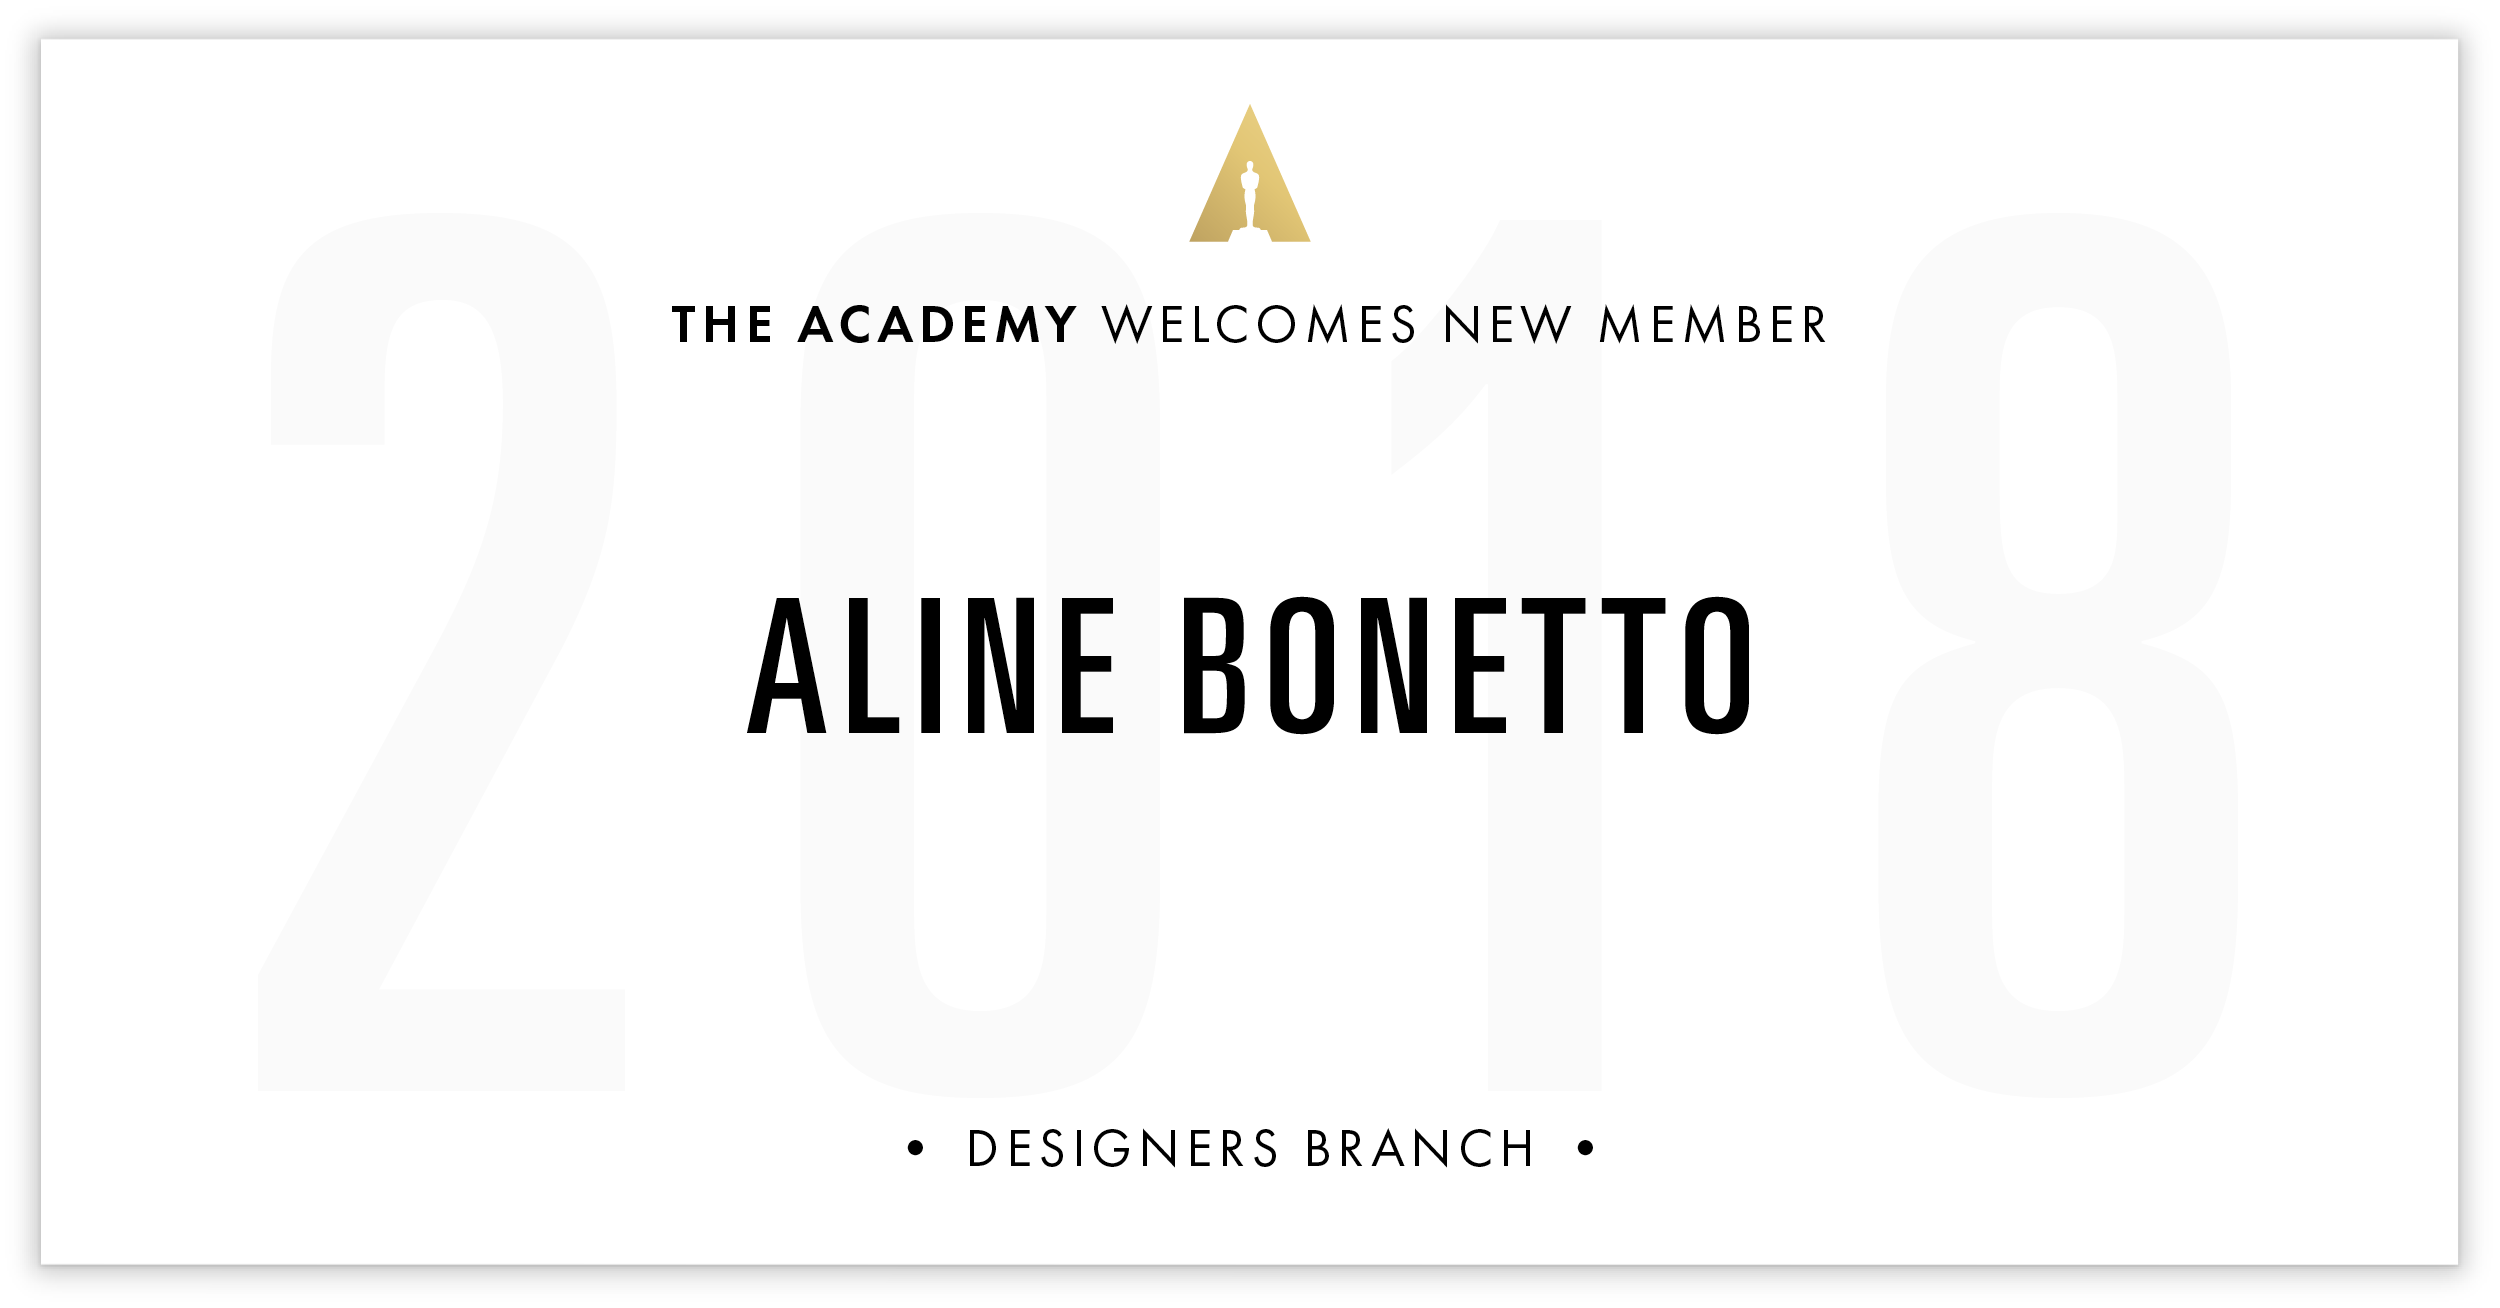 Aline Bonetto is invited!